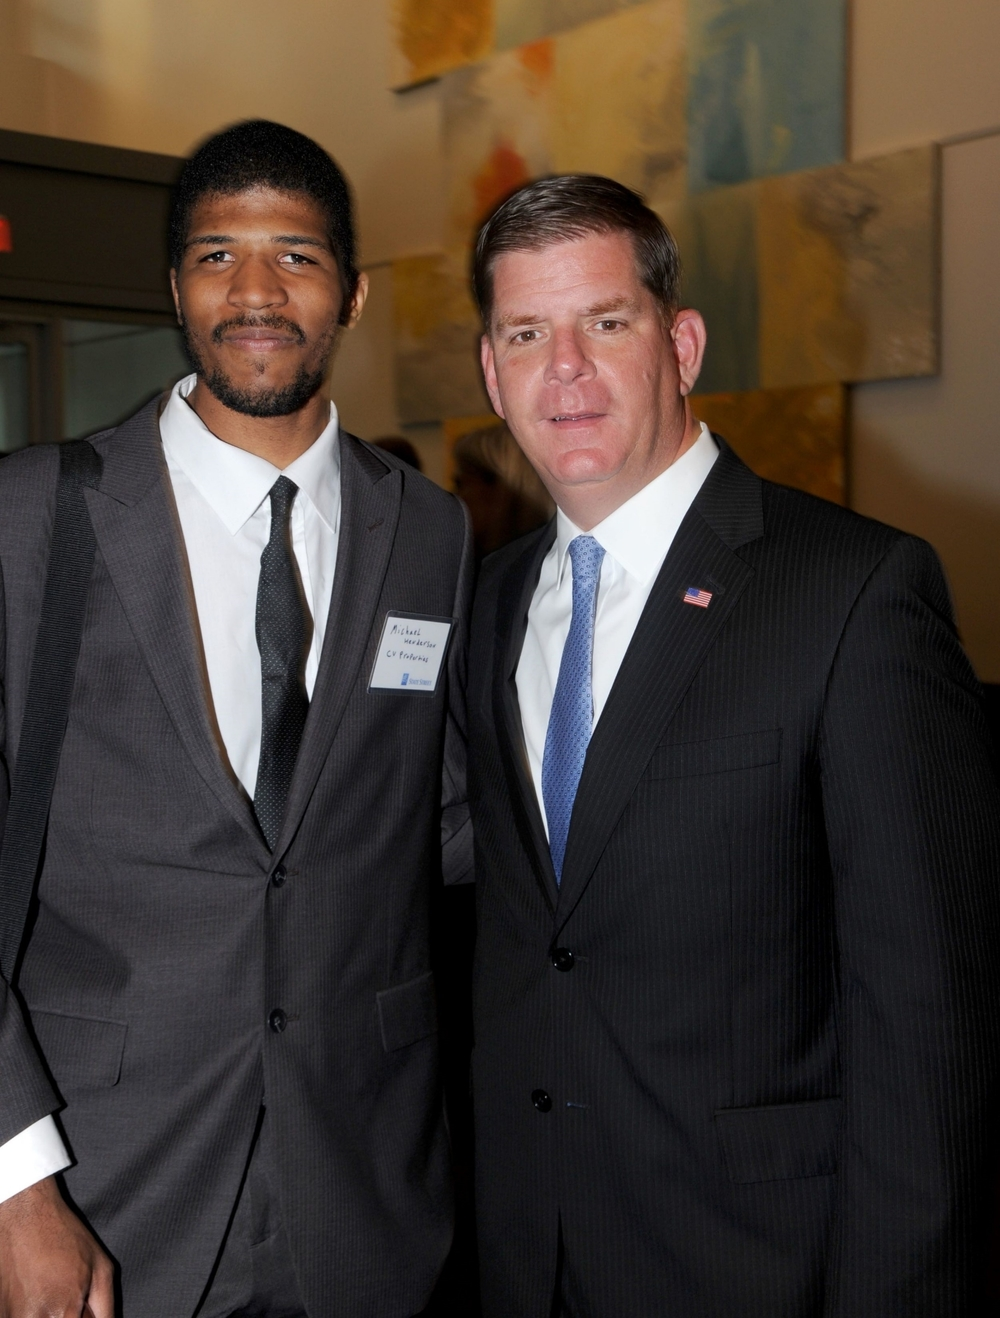 2014 CVP Intern Michael Henderson with Mayor Walsh at State Street Corp.'s ribbon cutting.